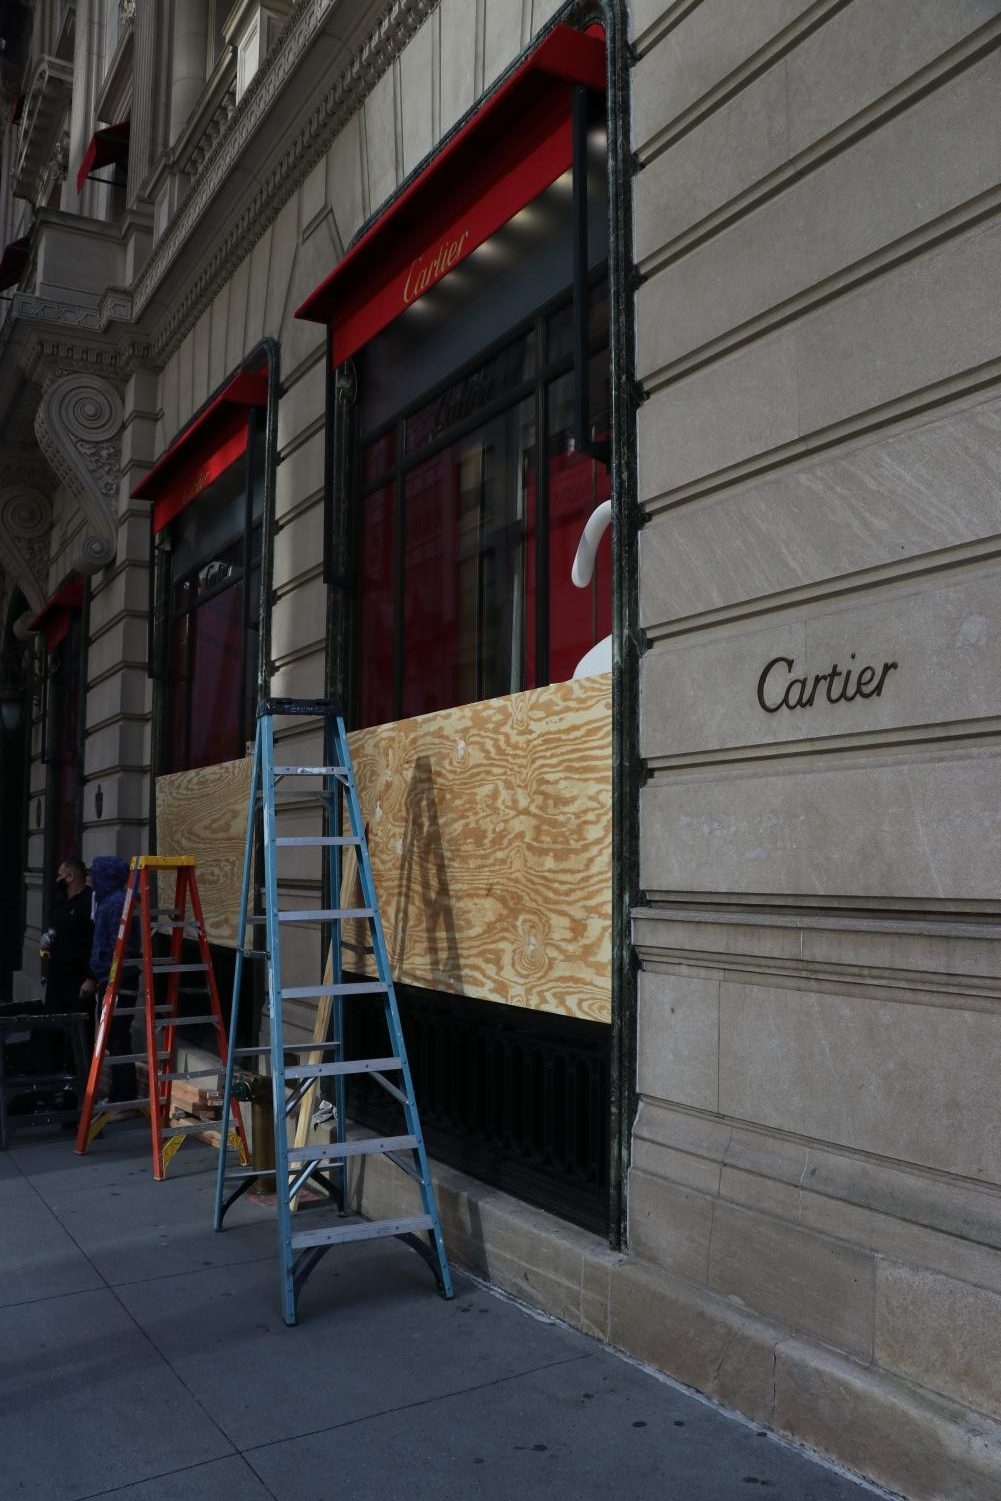 a ladder stands on the sidewalk as boards are put up on the windows of a Cartier store